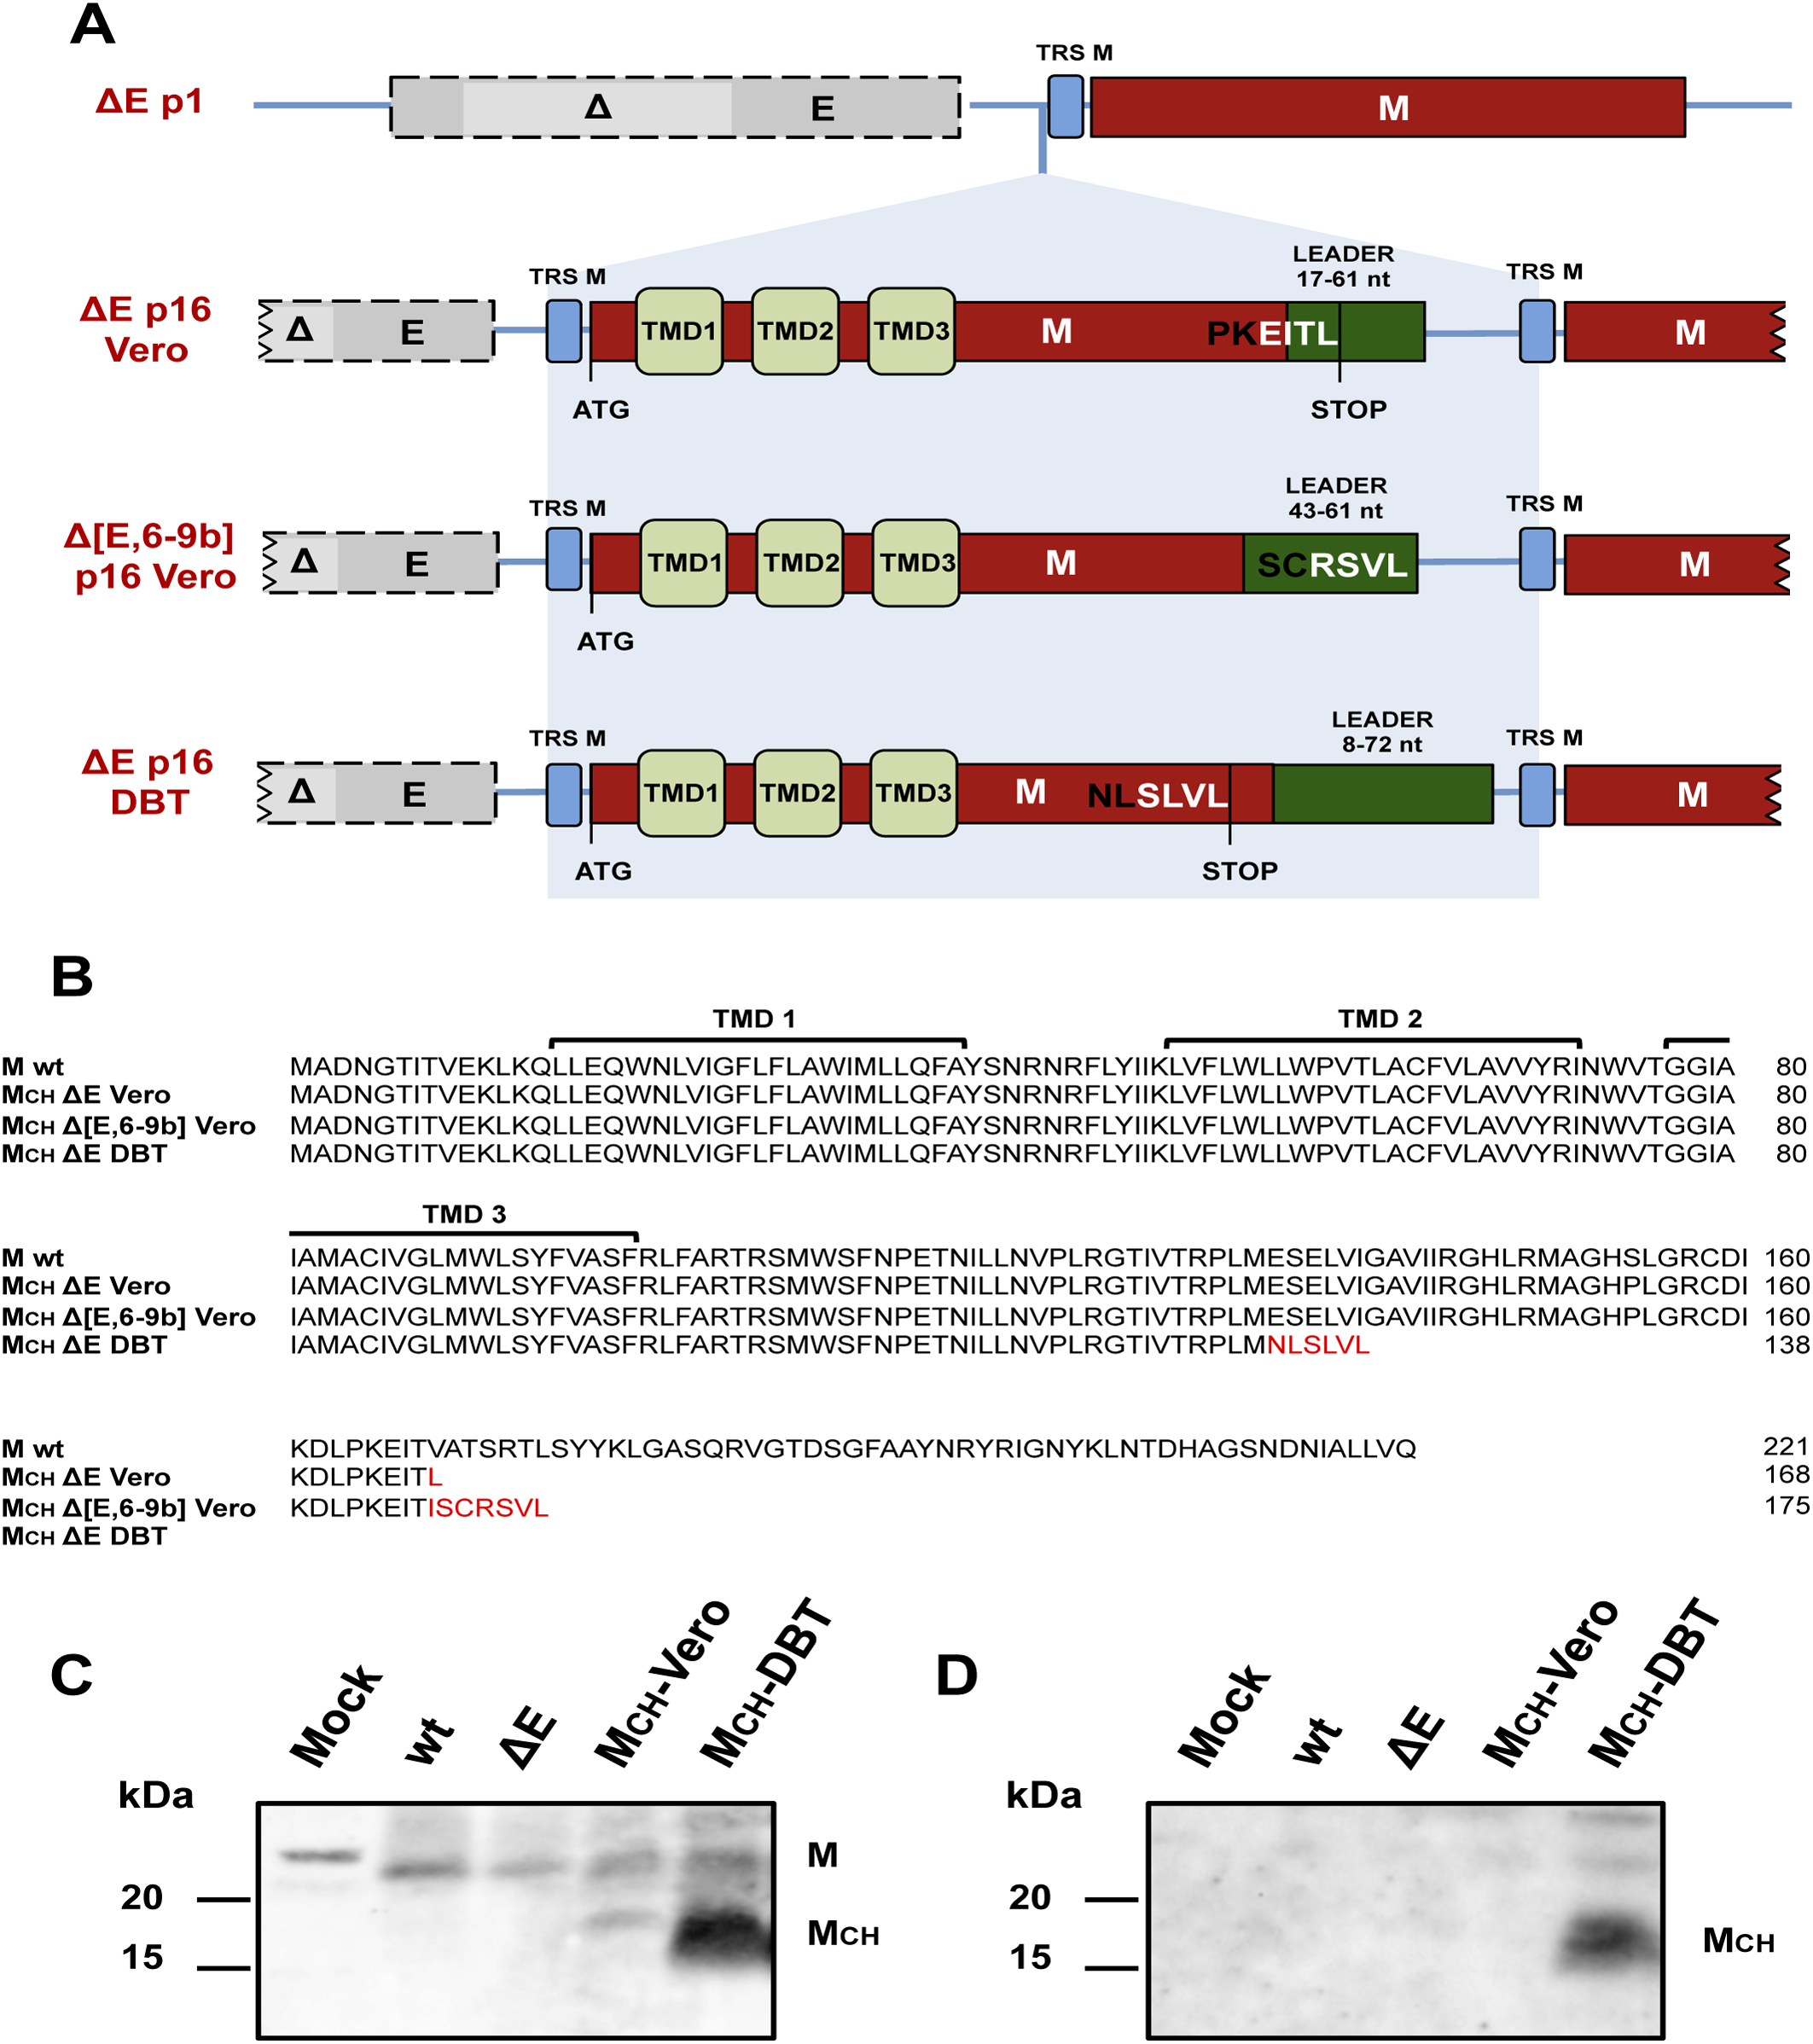 Generation of chimeric membrane genes after 16 serial passages of SARS-CoV lacking E protein in cell culture.